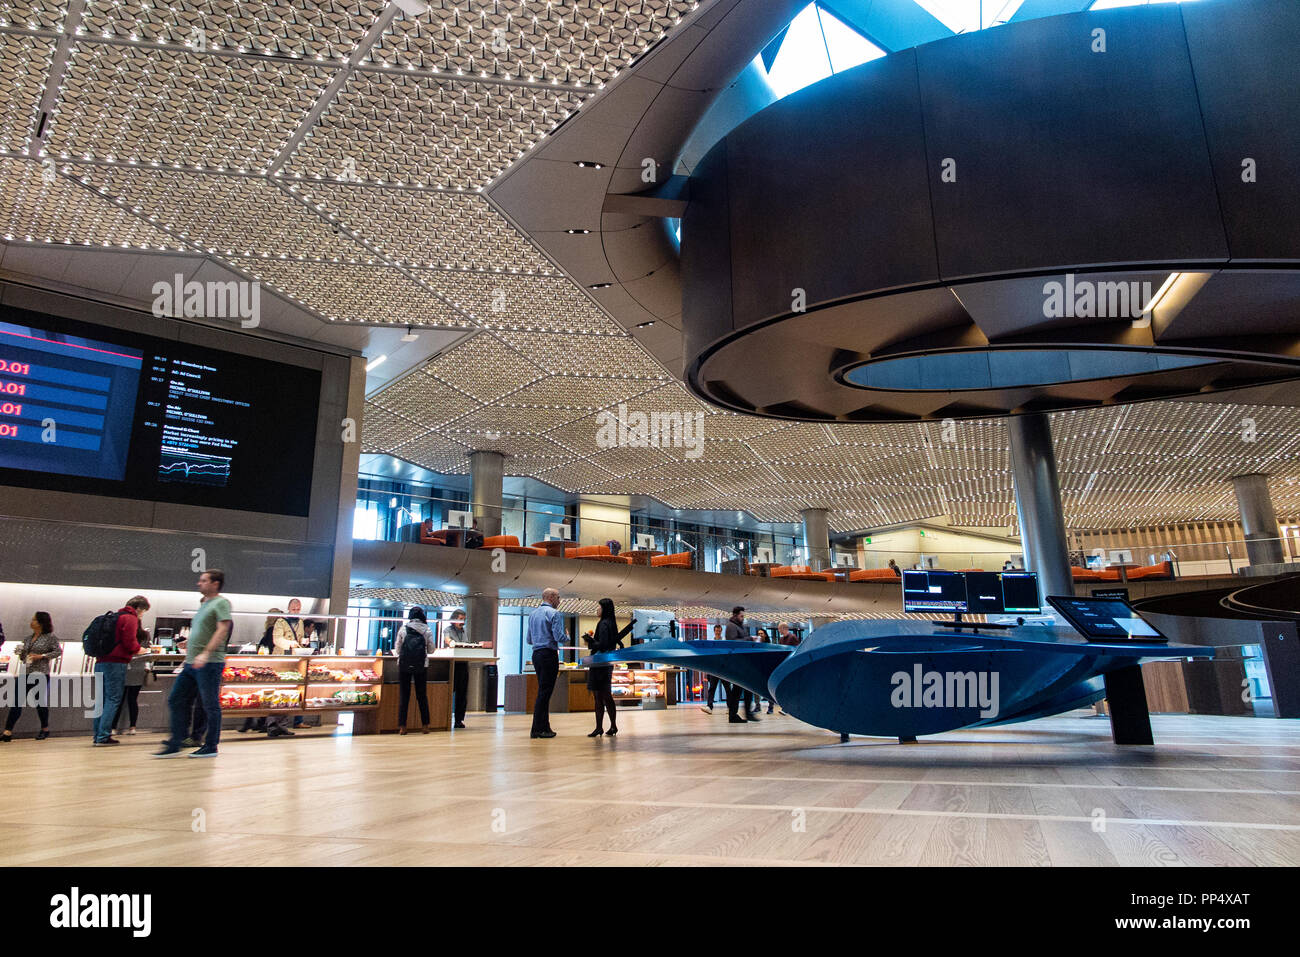 The interior of Bloomberg's HQ in London - Stock Image